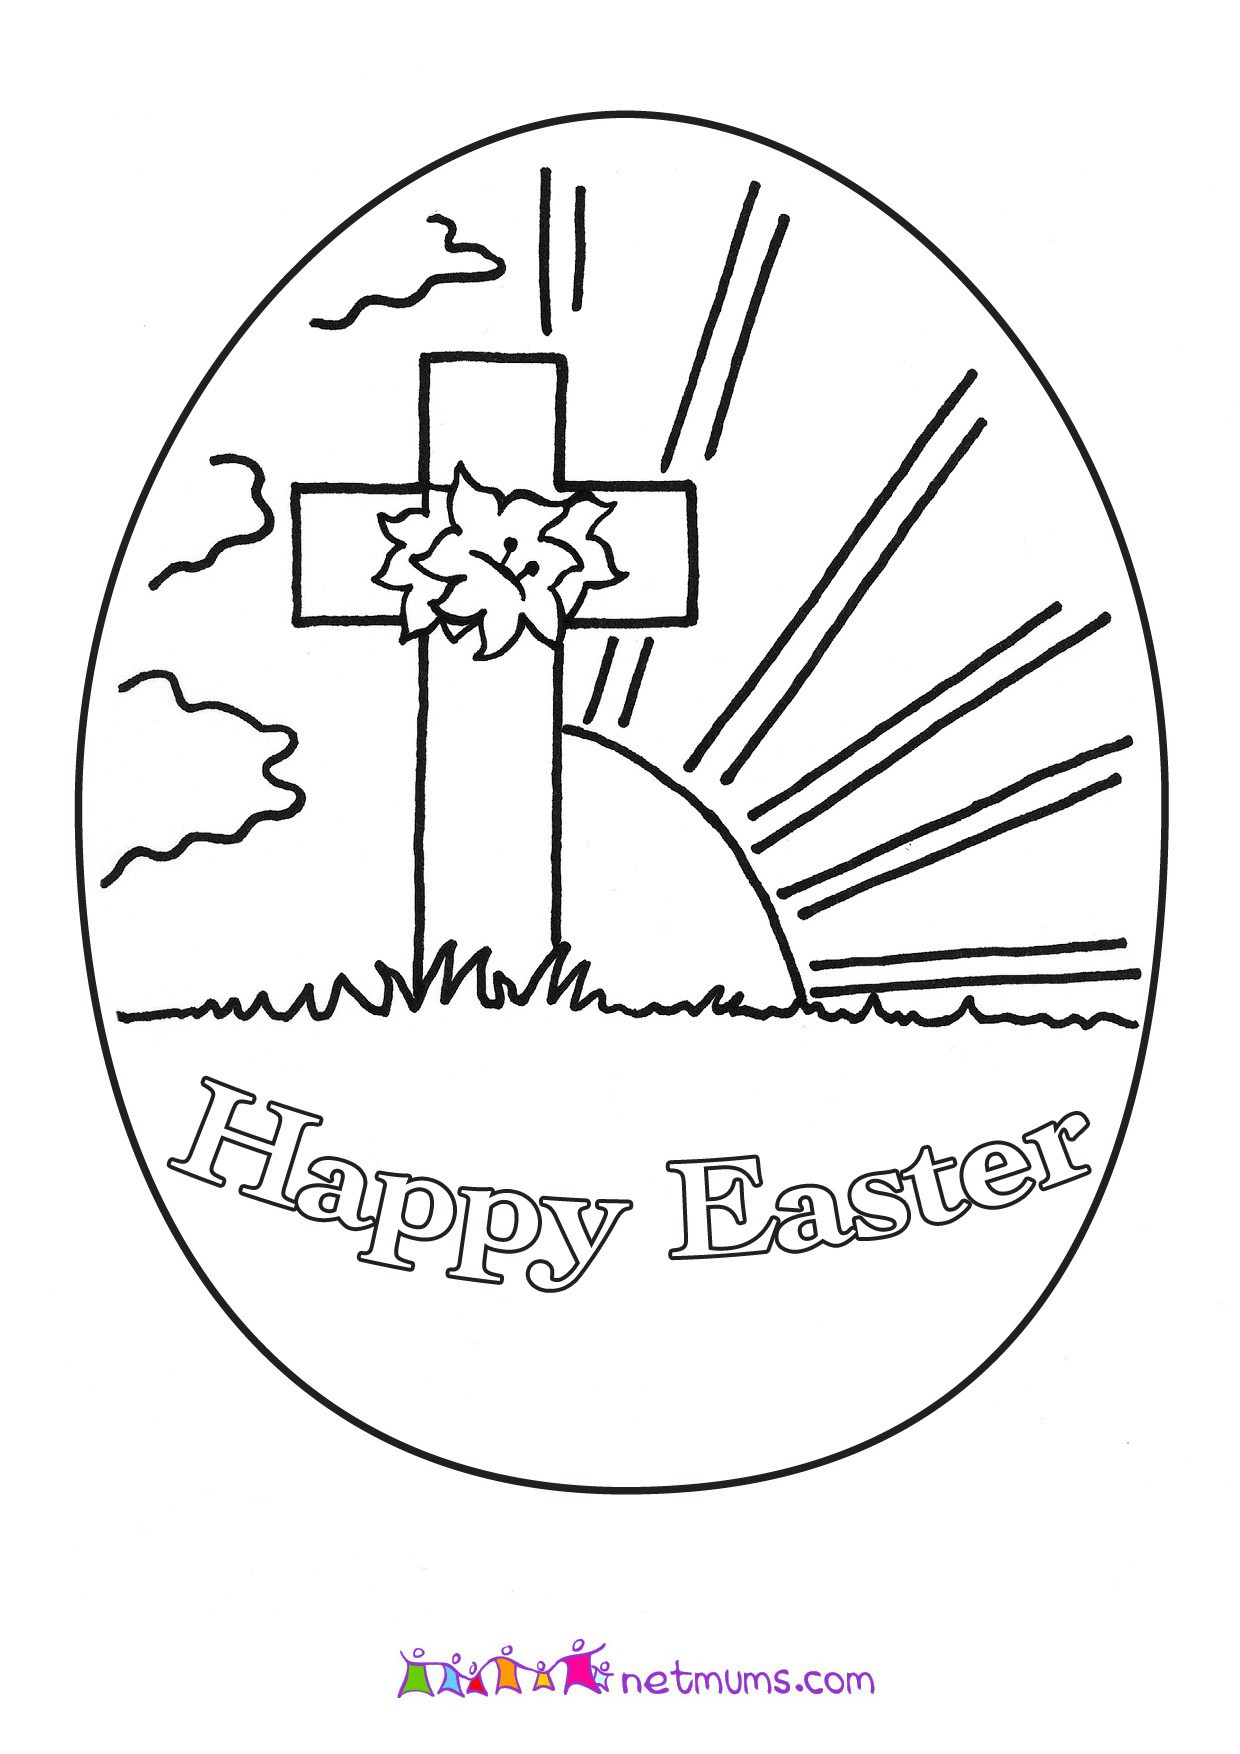 Easter Printable Coloring Pages Religious  Easter Coloring Sheets For Kids Religious Easter Activity